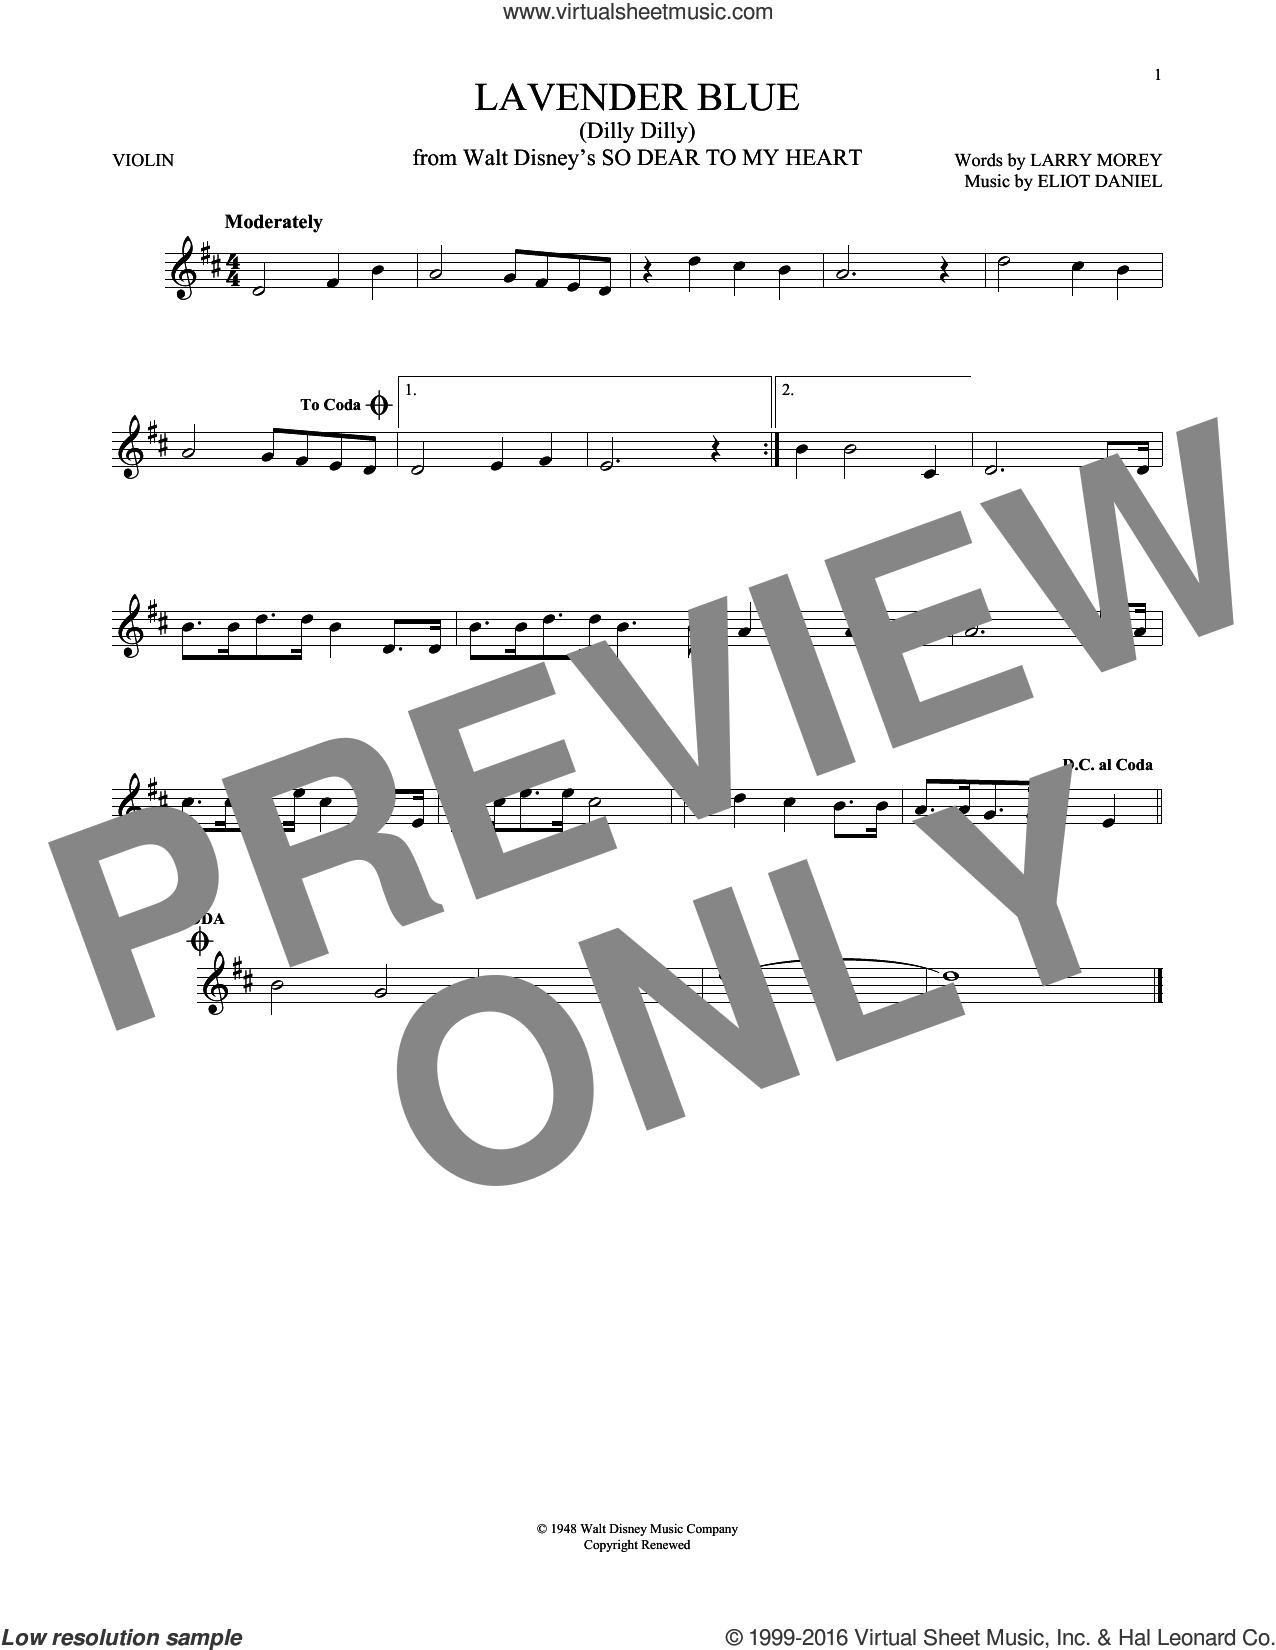 Lavender Blue (Dilly Dilly) sheet music for violin solo by Sammy Turner, Eliot Daniel and Larry Morey, intermediate skill level